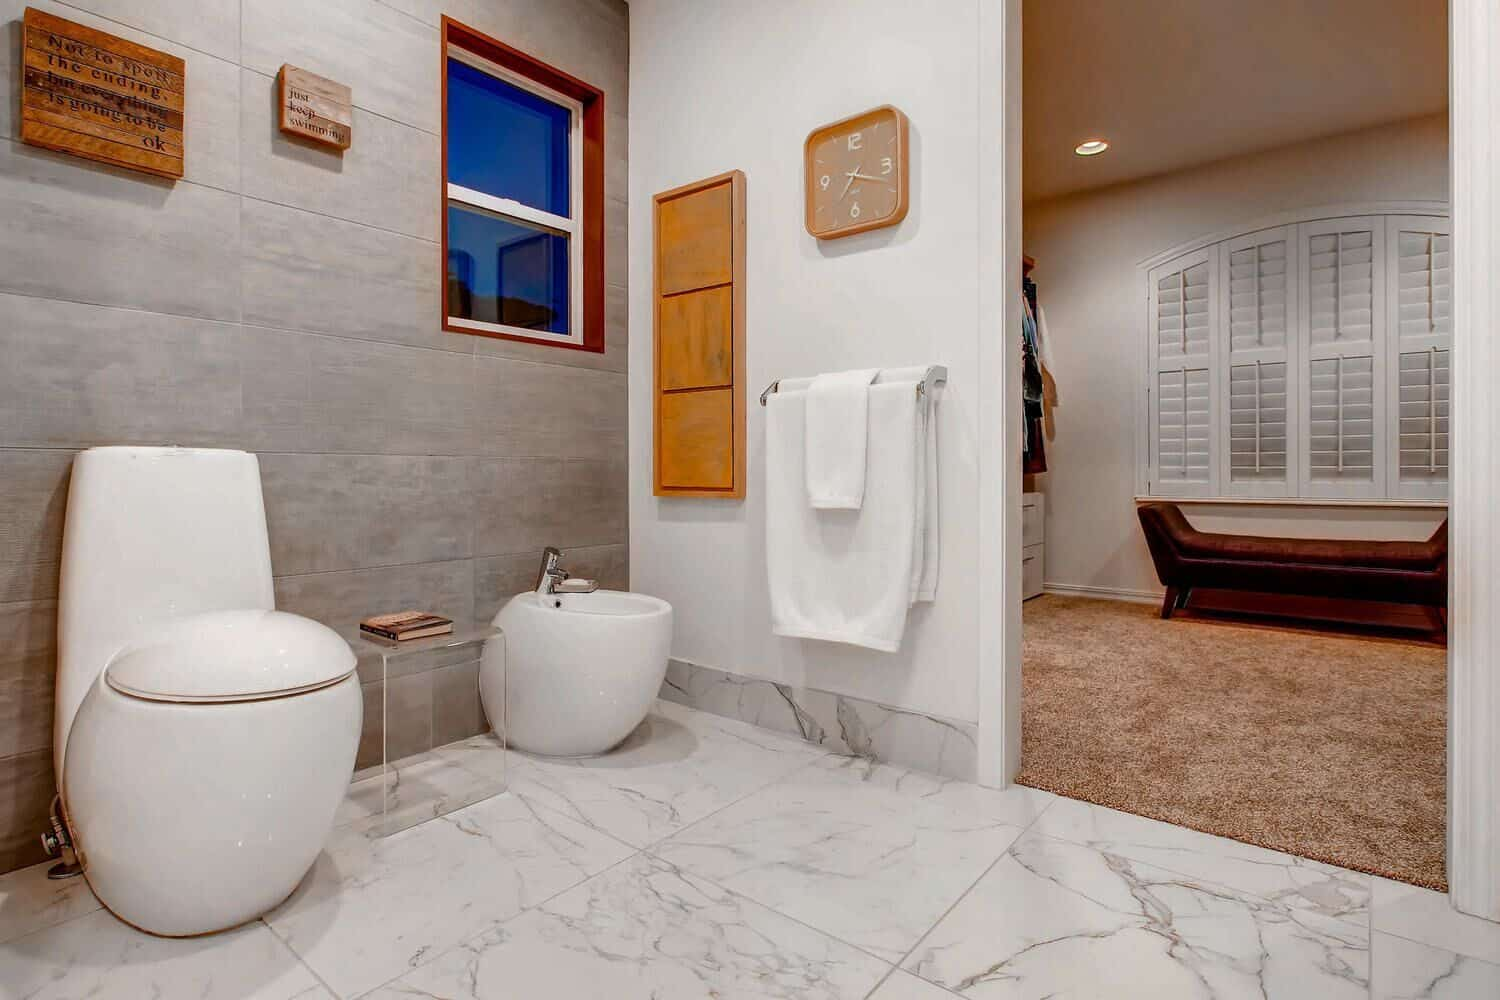 Toilet and Bidet Room